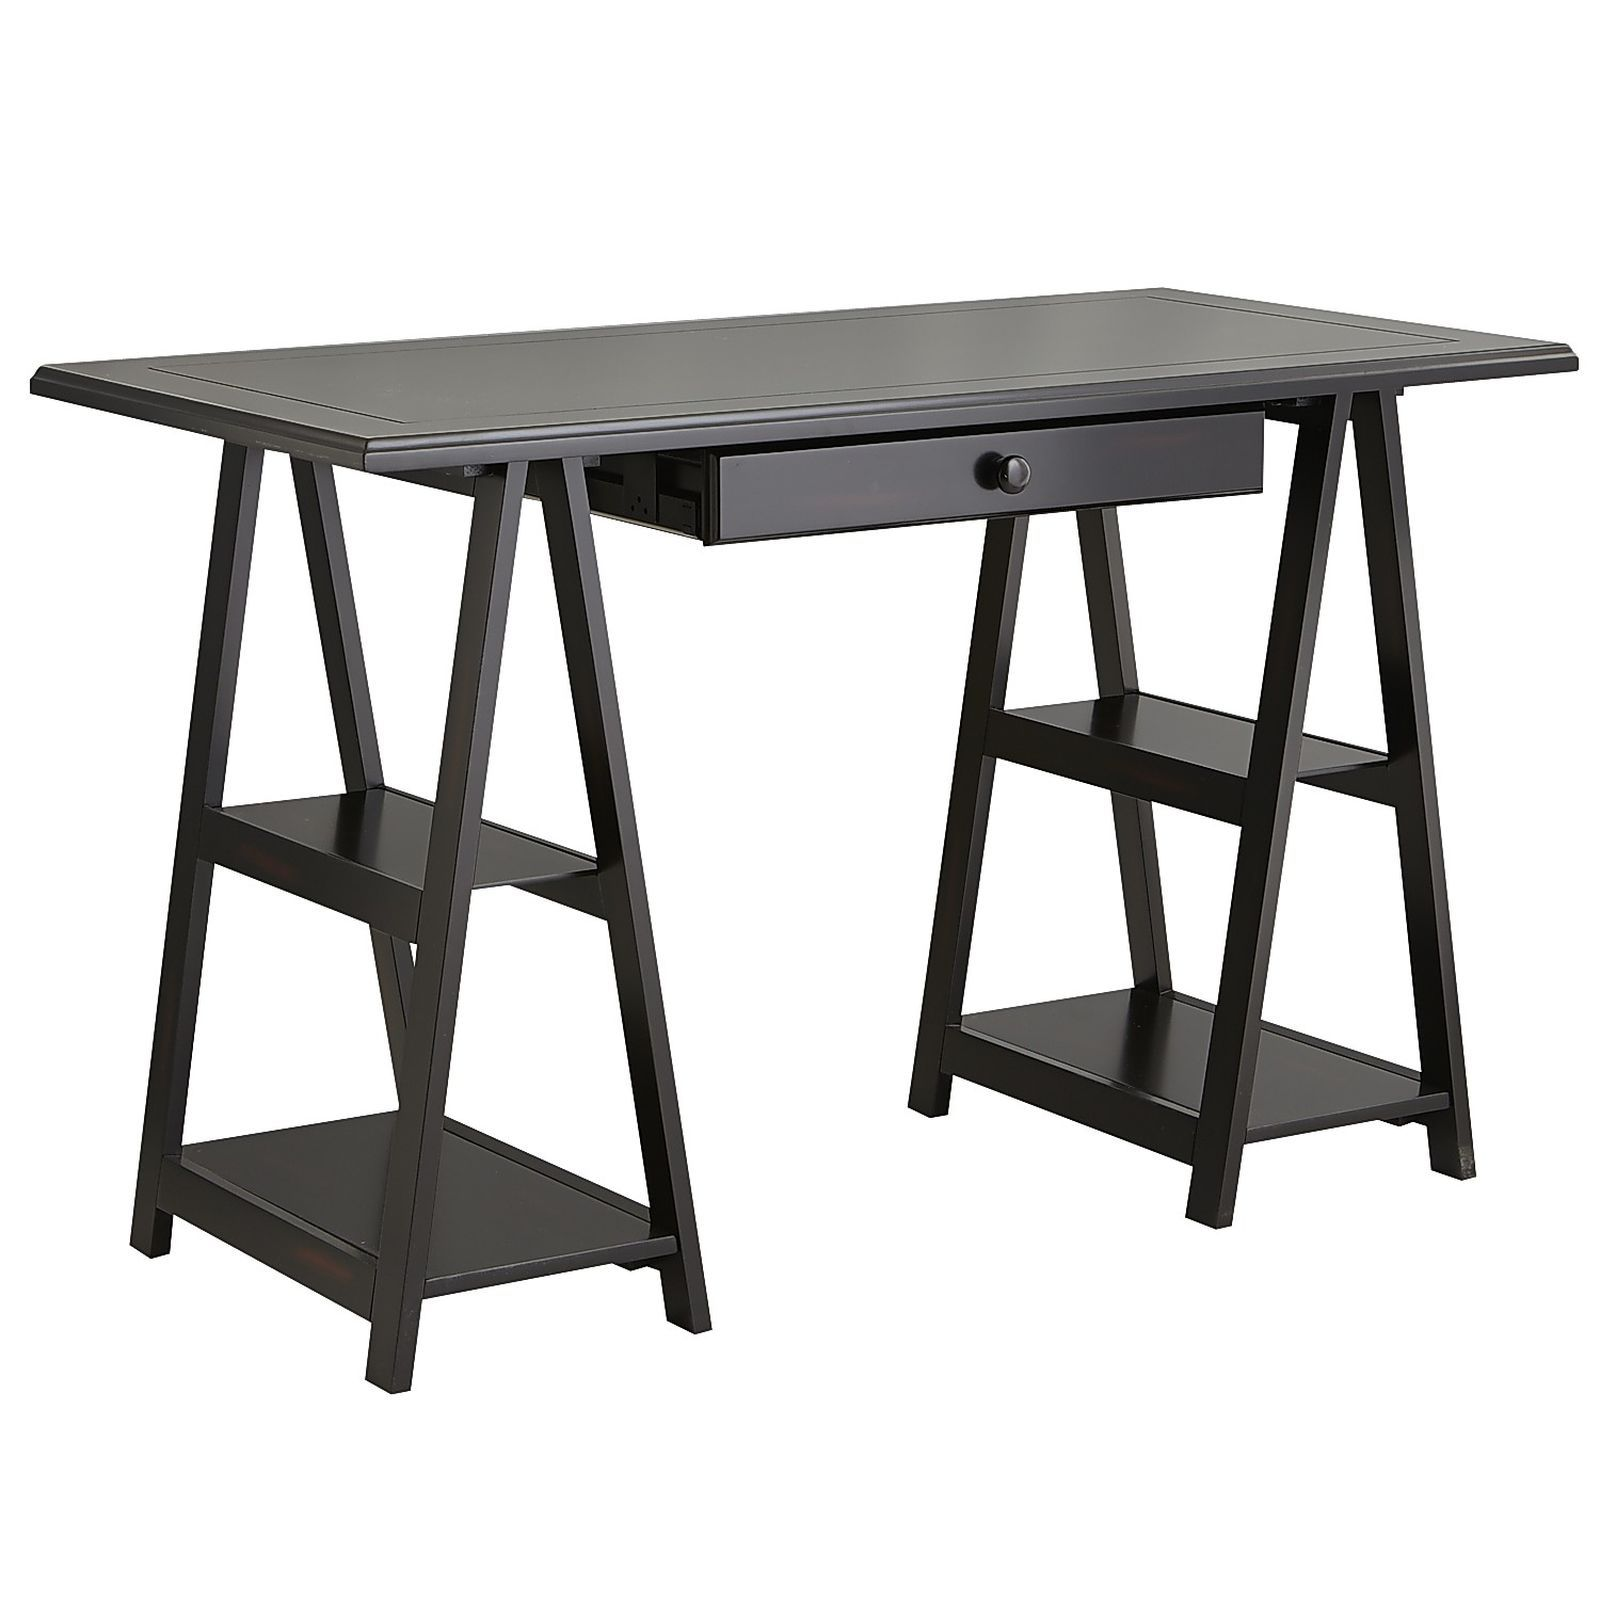 Cavaletto Desk U0026 Drawer Kit   Rubbed Black | Pier 1 Imports